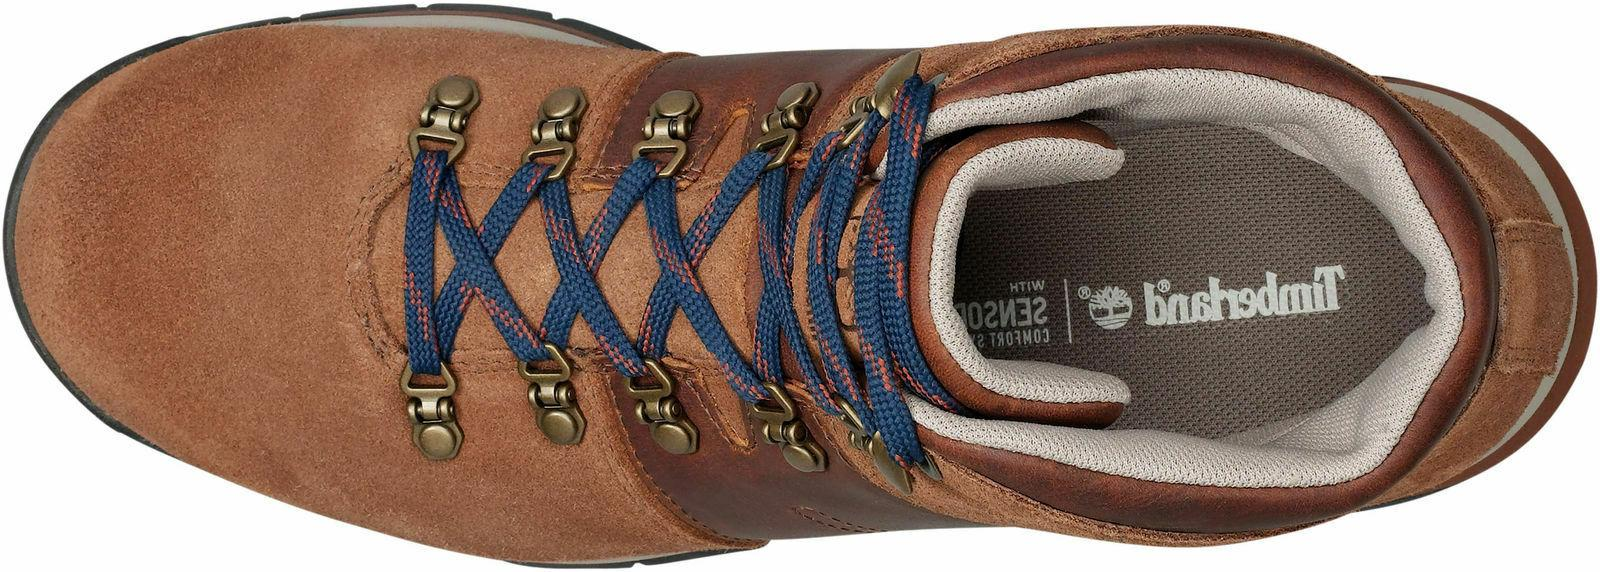 TIMBERLAND A1QH9 GT MID BROWN WATERPROOF HIKING Size